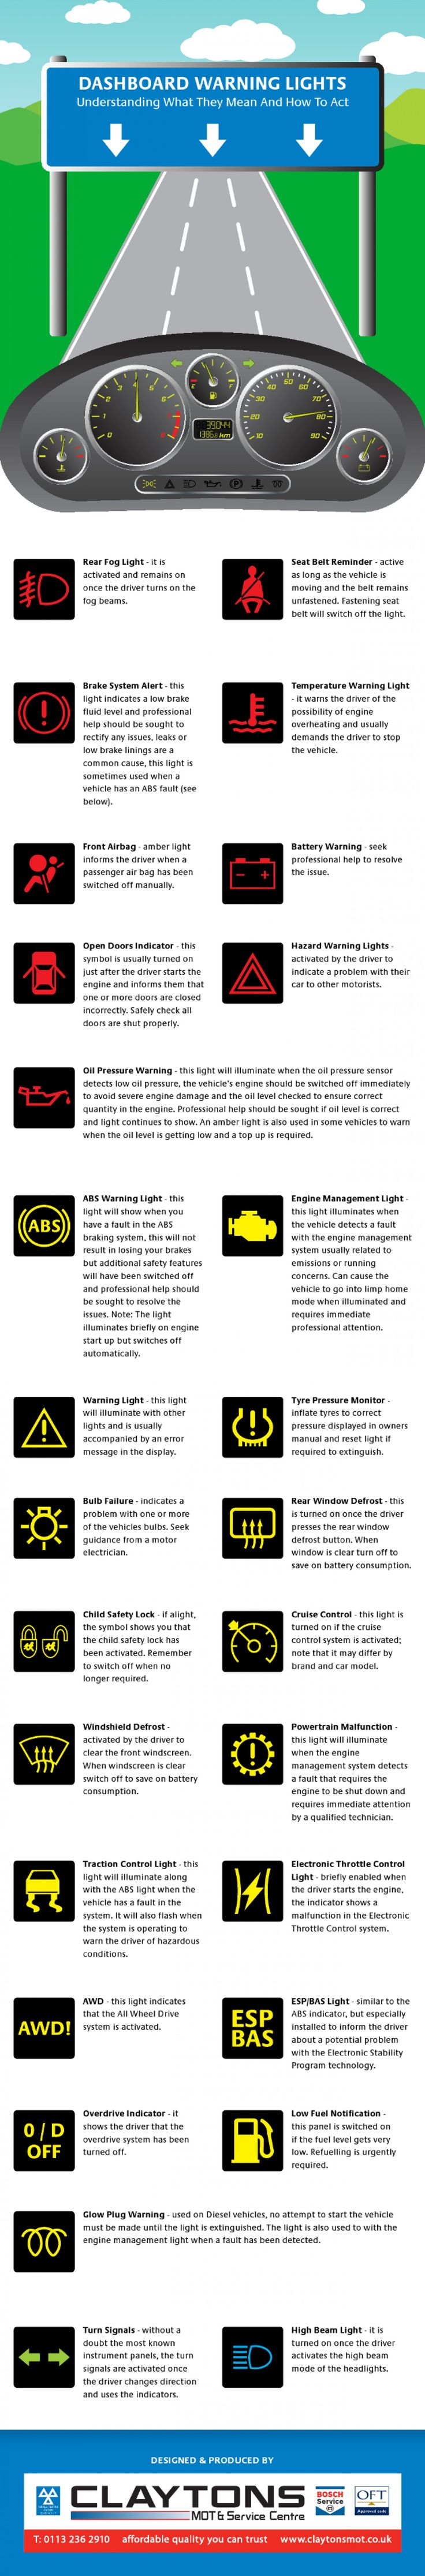 Car dashboard warning lights understanding what they mean how to act via http